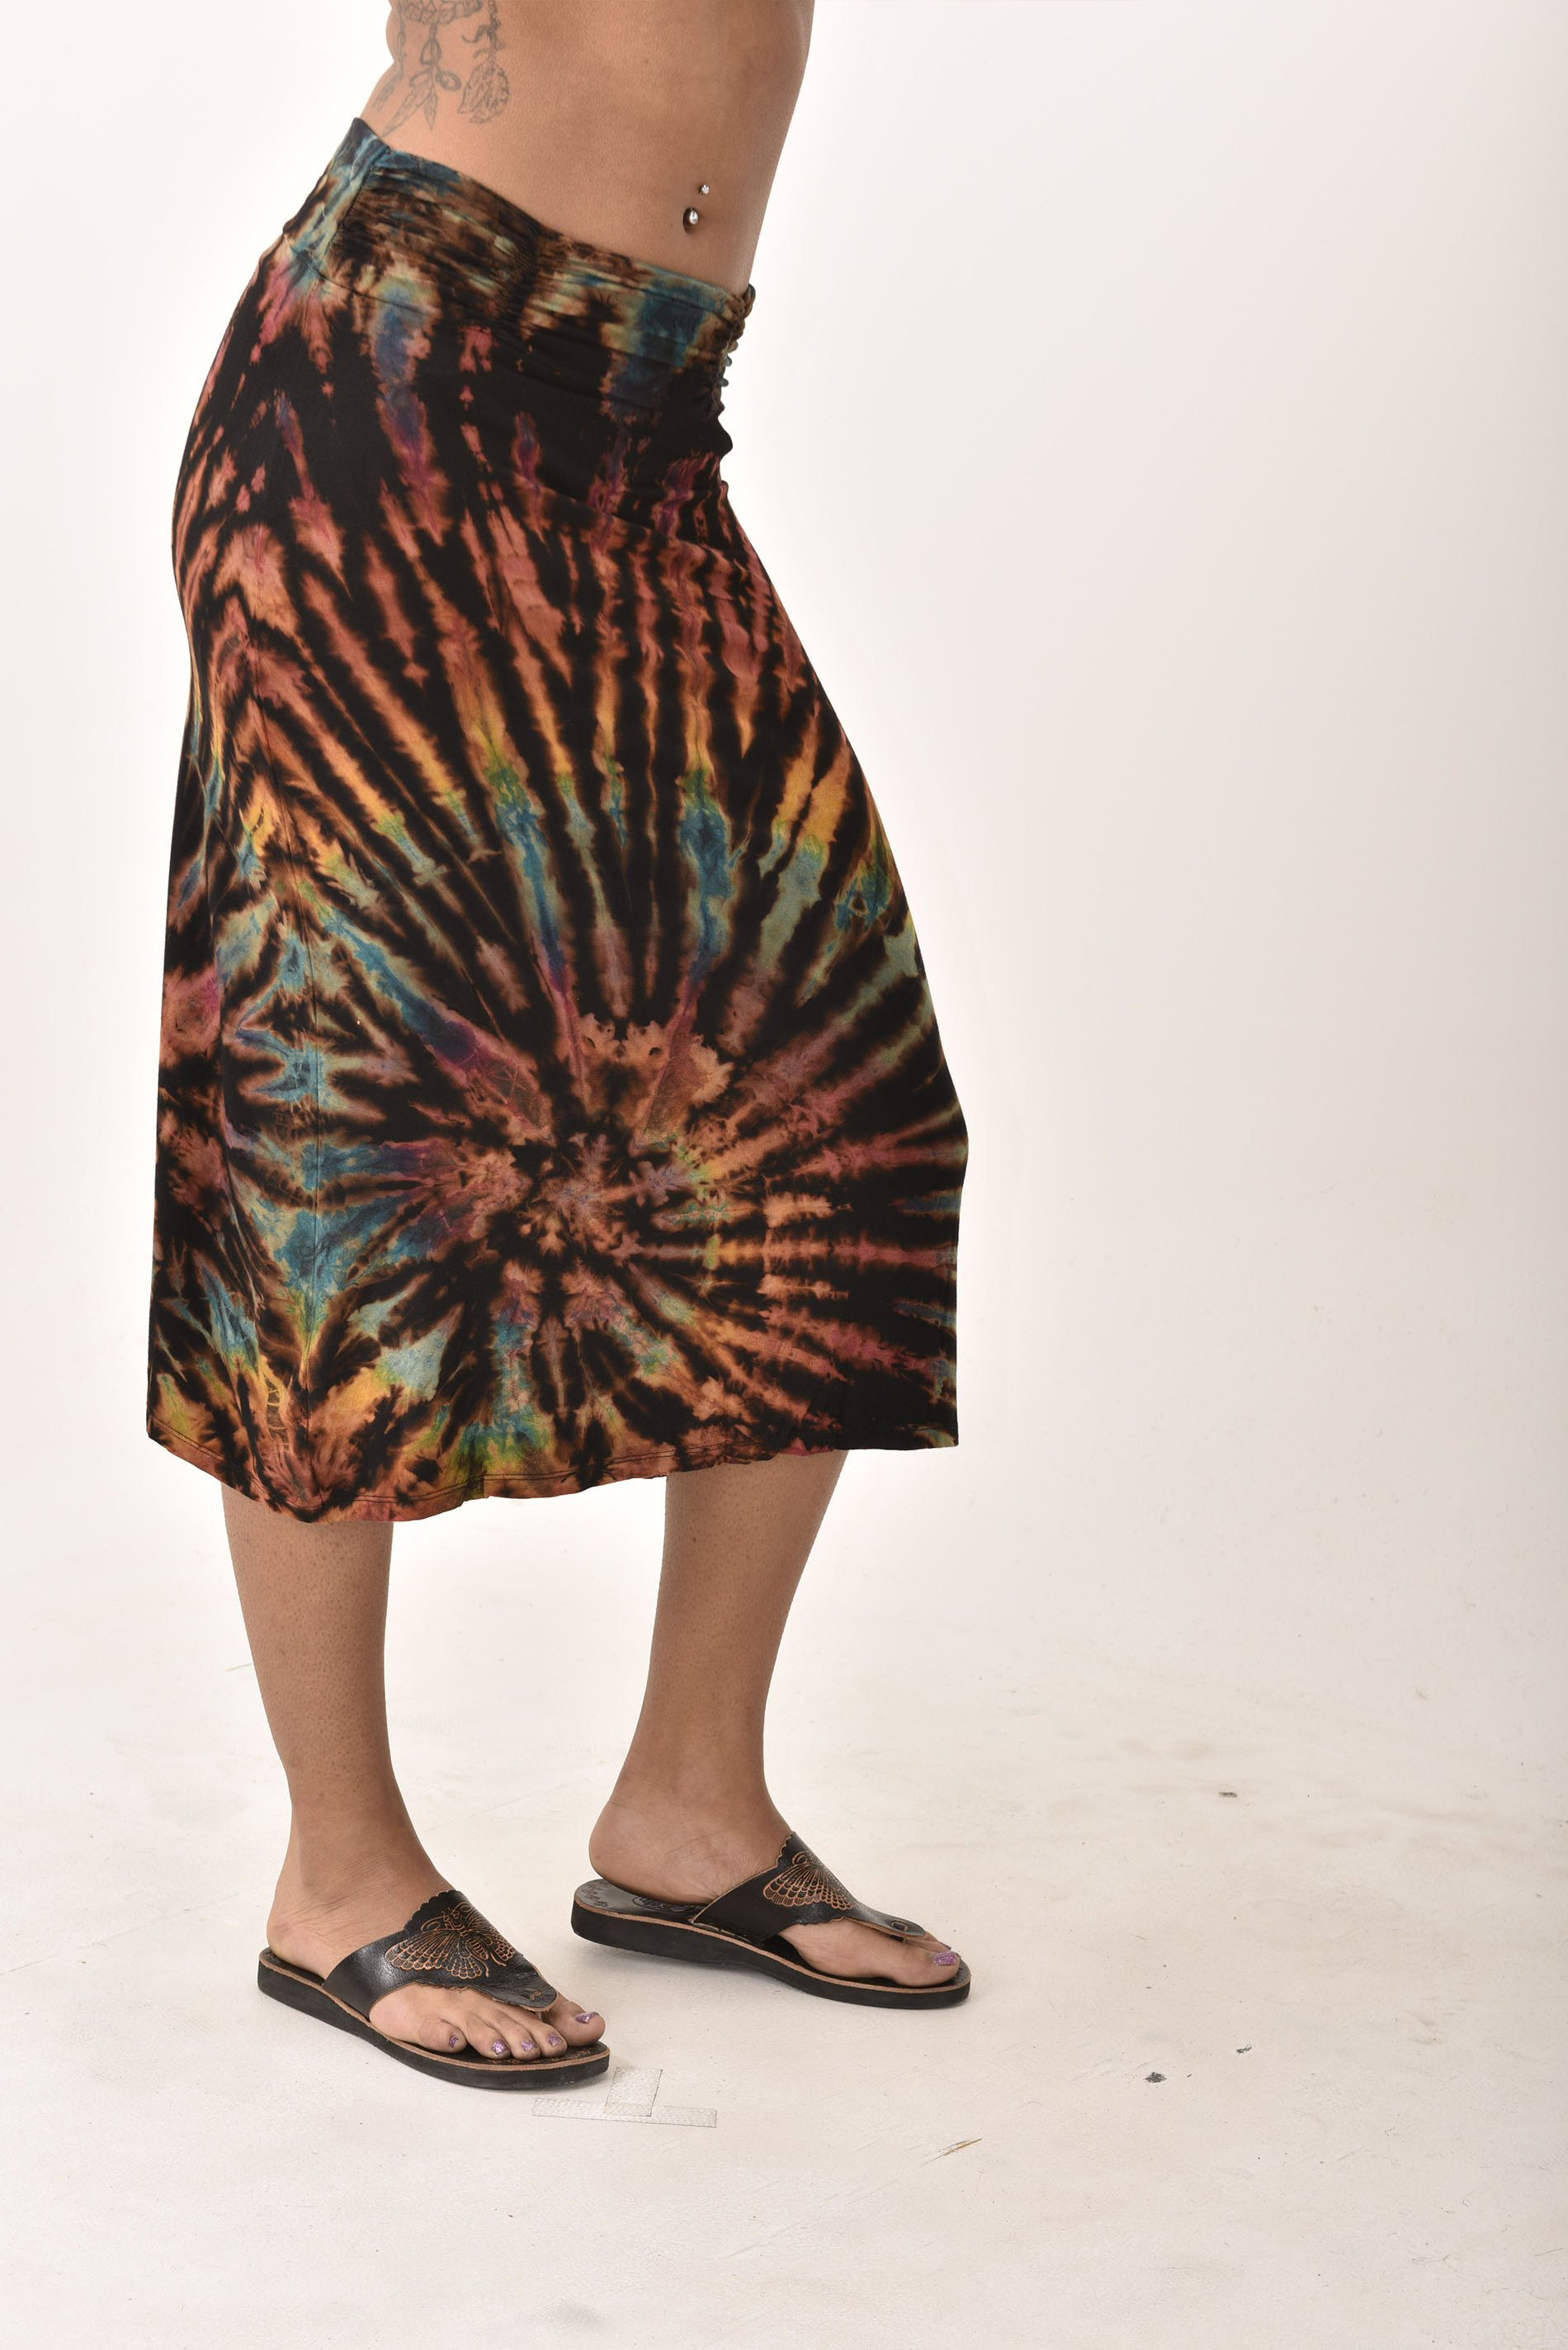 Hand Painted Tie Dye A-Line Midi Skirt Black